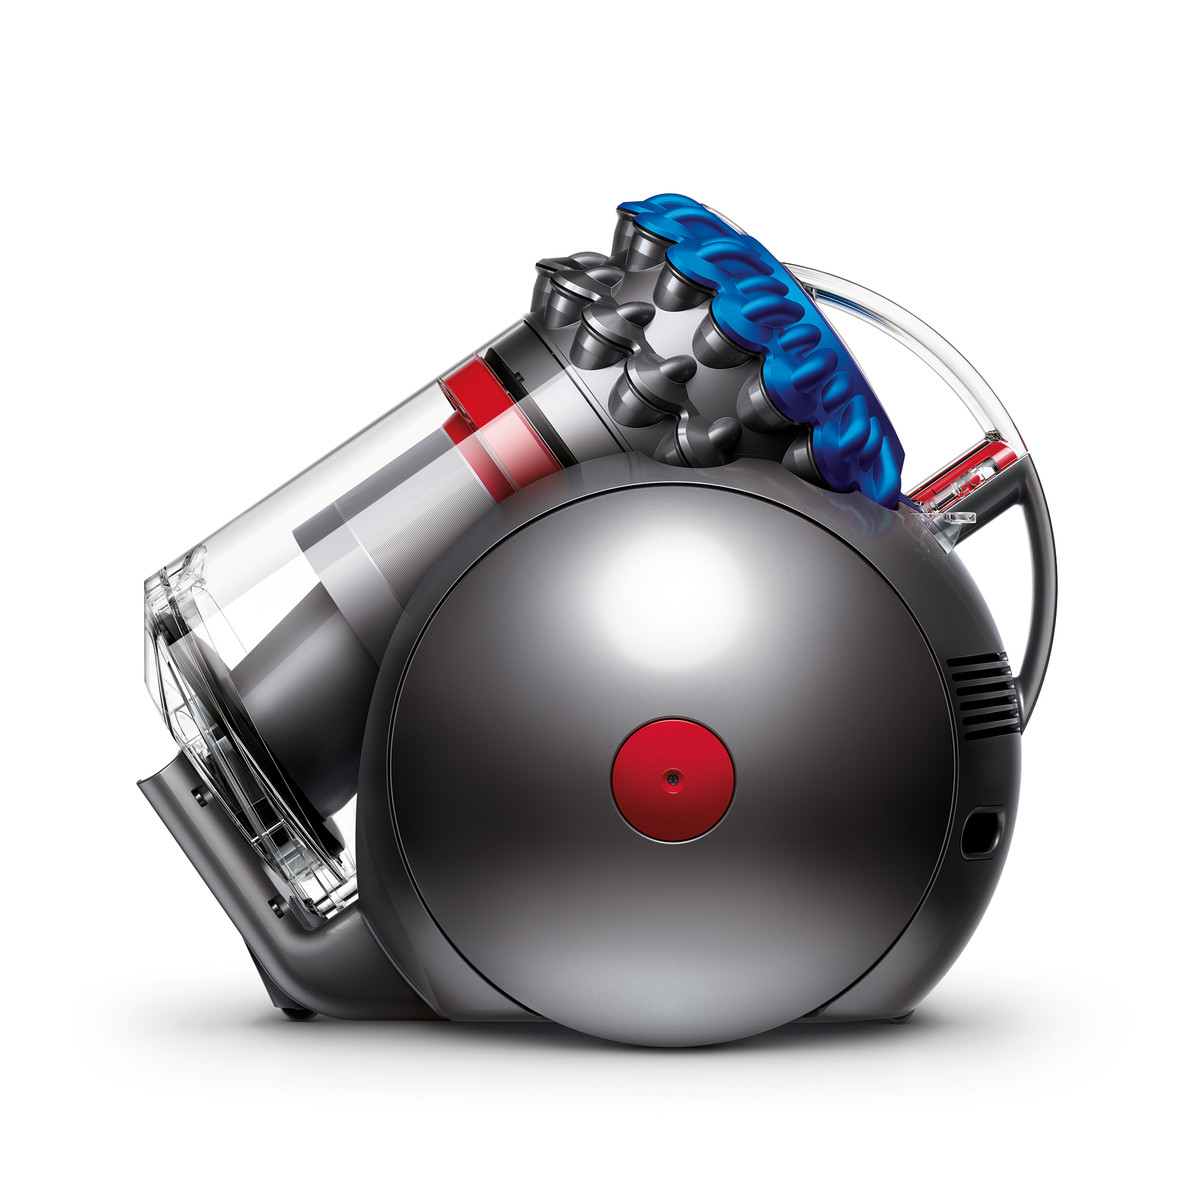 Aspirateur sans sac Dyson CINETIC BIG BALL MUSCLEHEAD, Soldes Aspirateur Darty